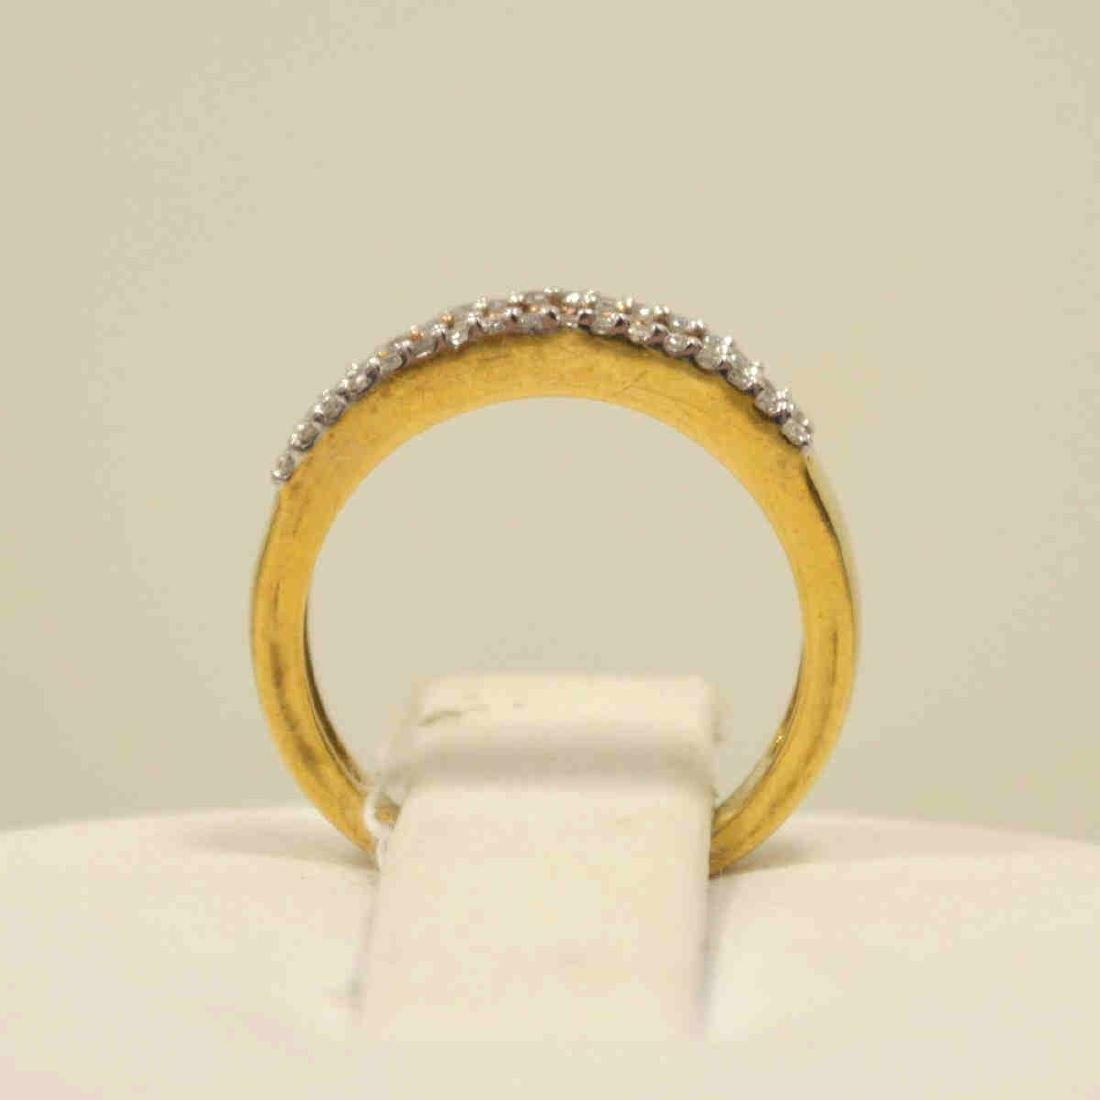 10kt yellow gold diamond fashion band - 3